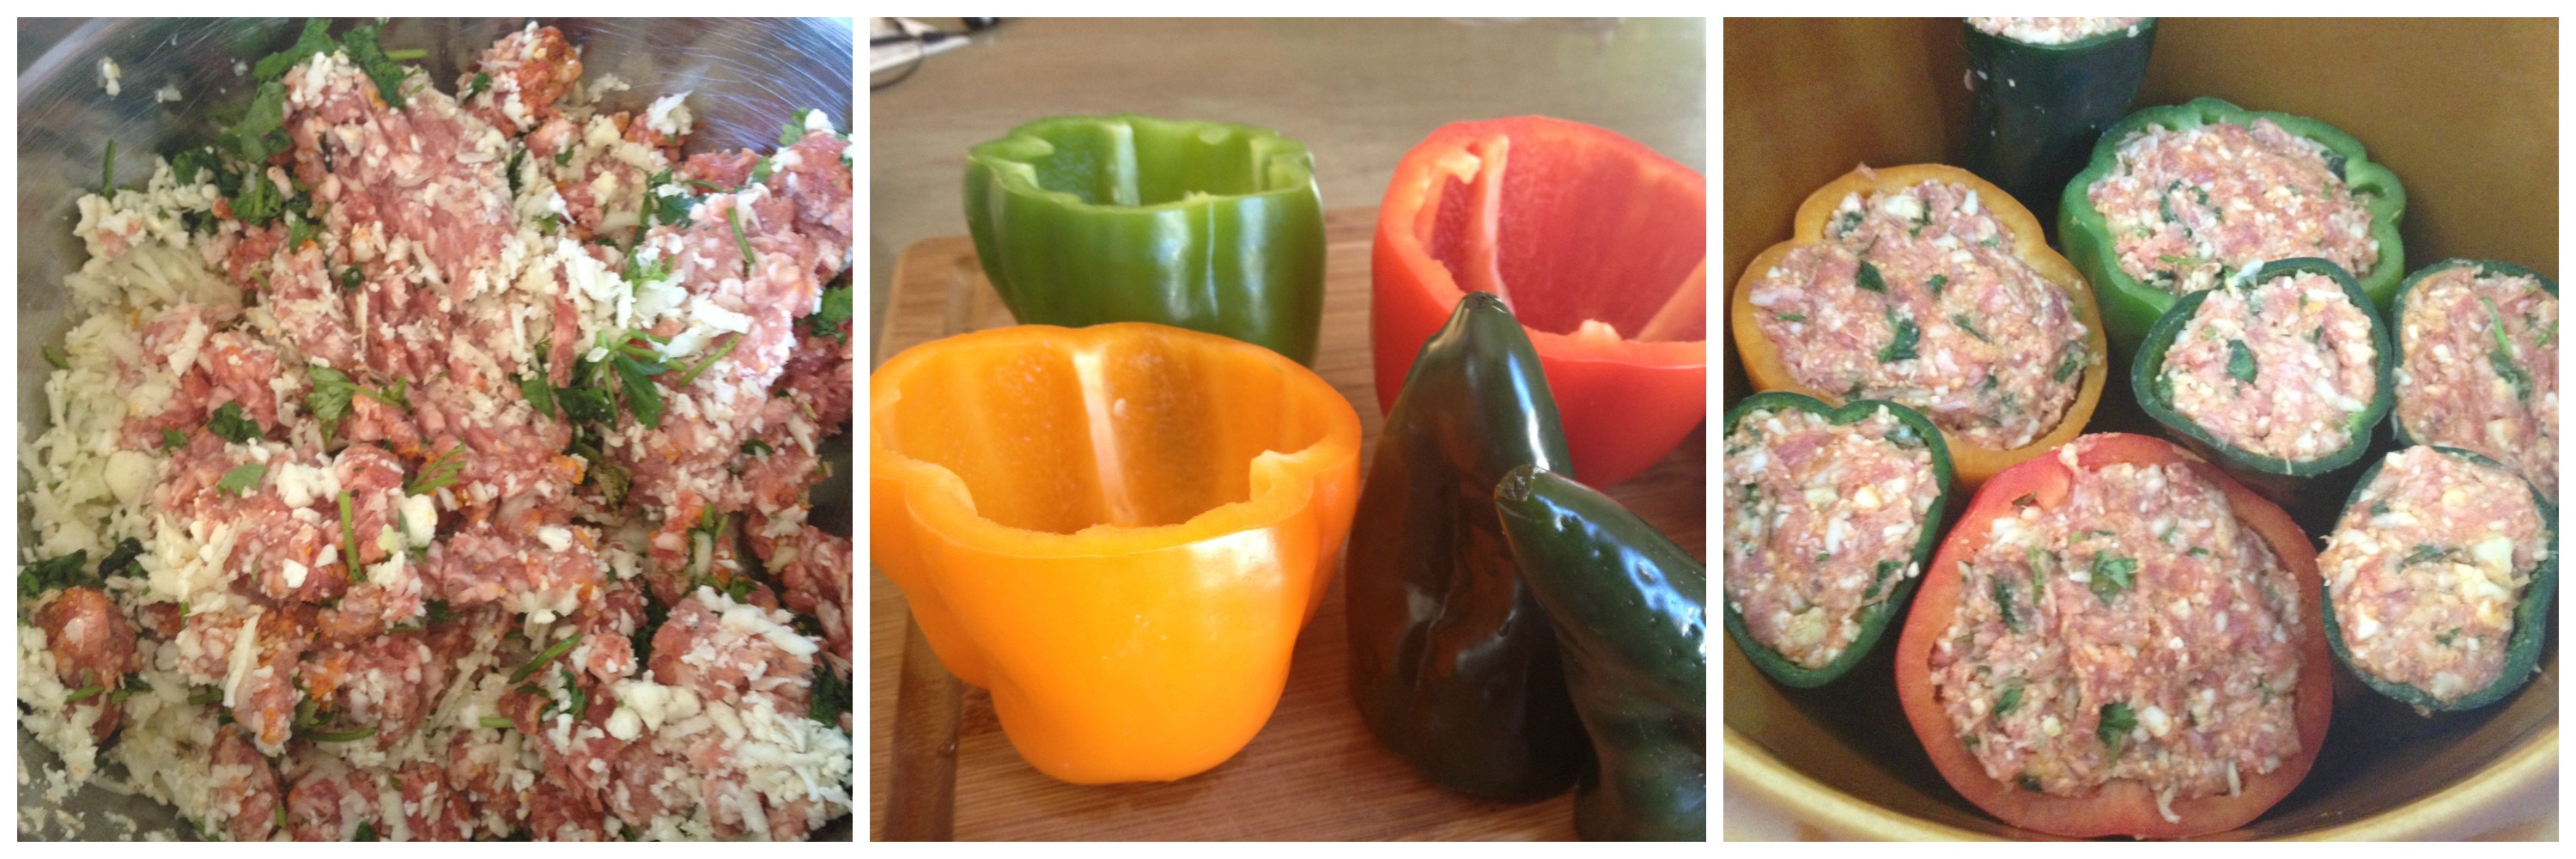 Stuffed peppers 3 ways